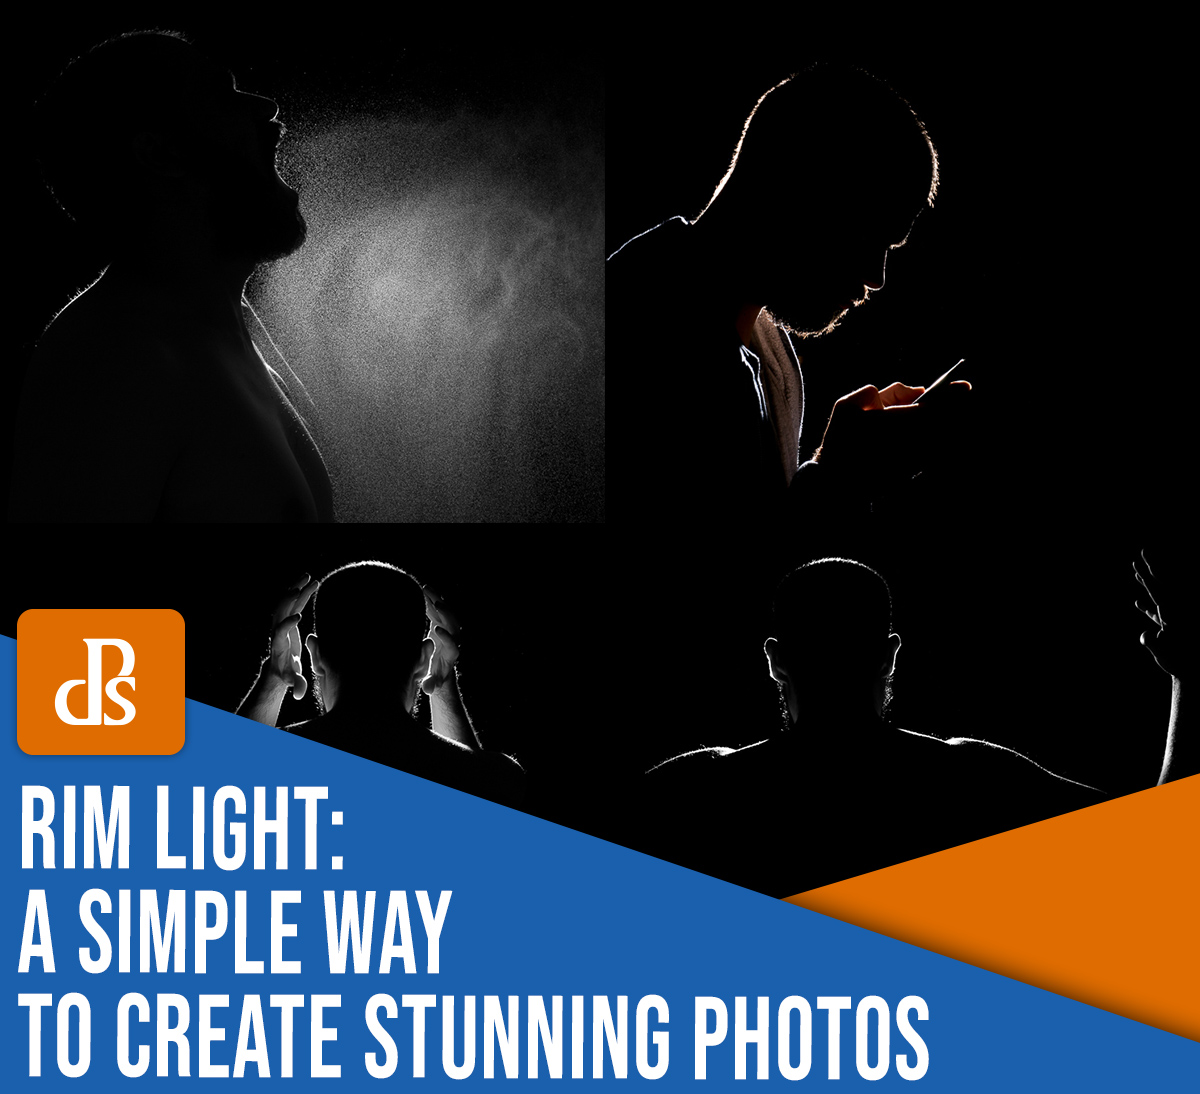 Rim Light: A Simple Way to Create Stunning Photos (With One Flash)